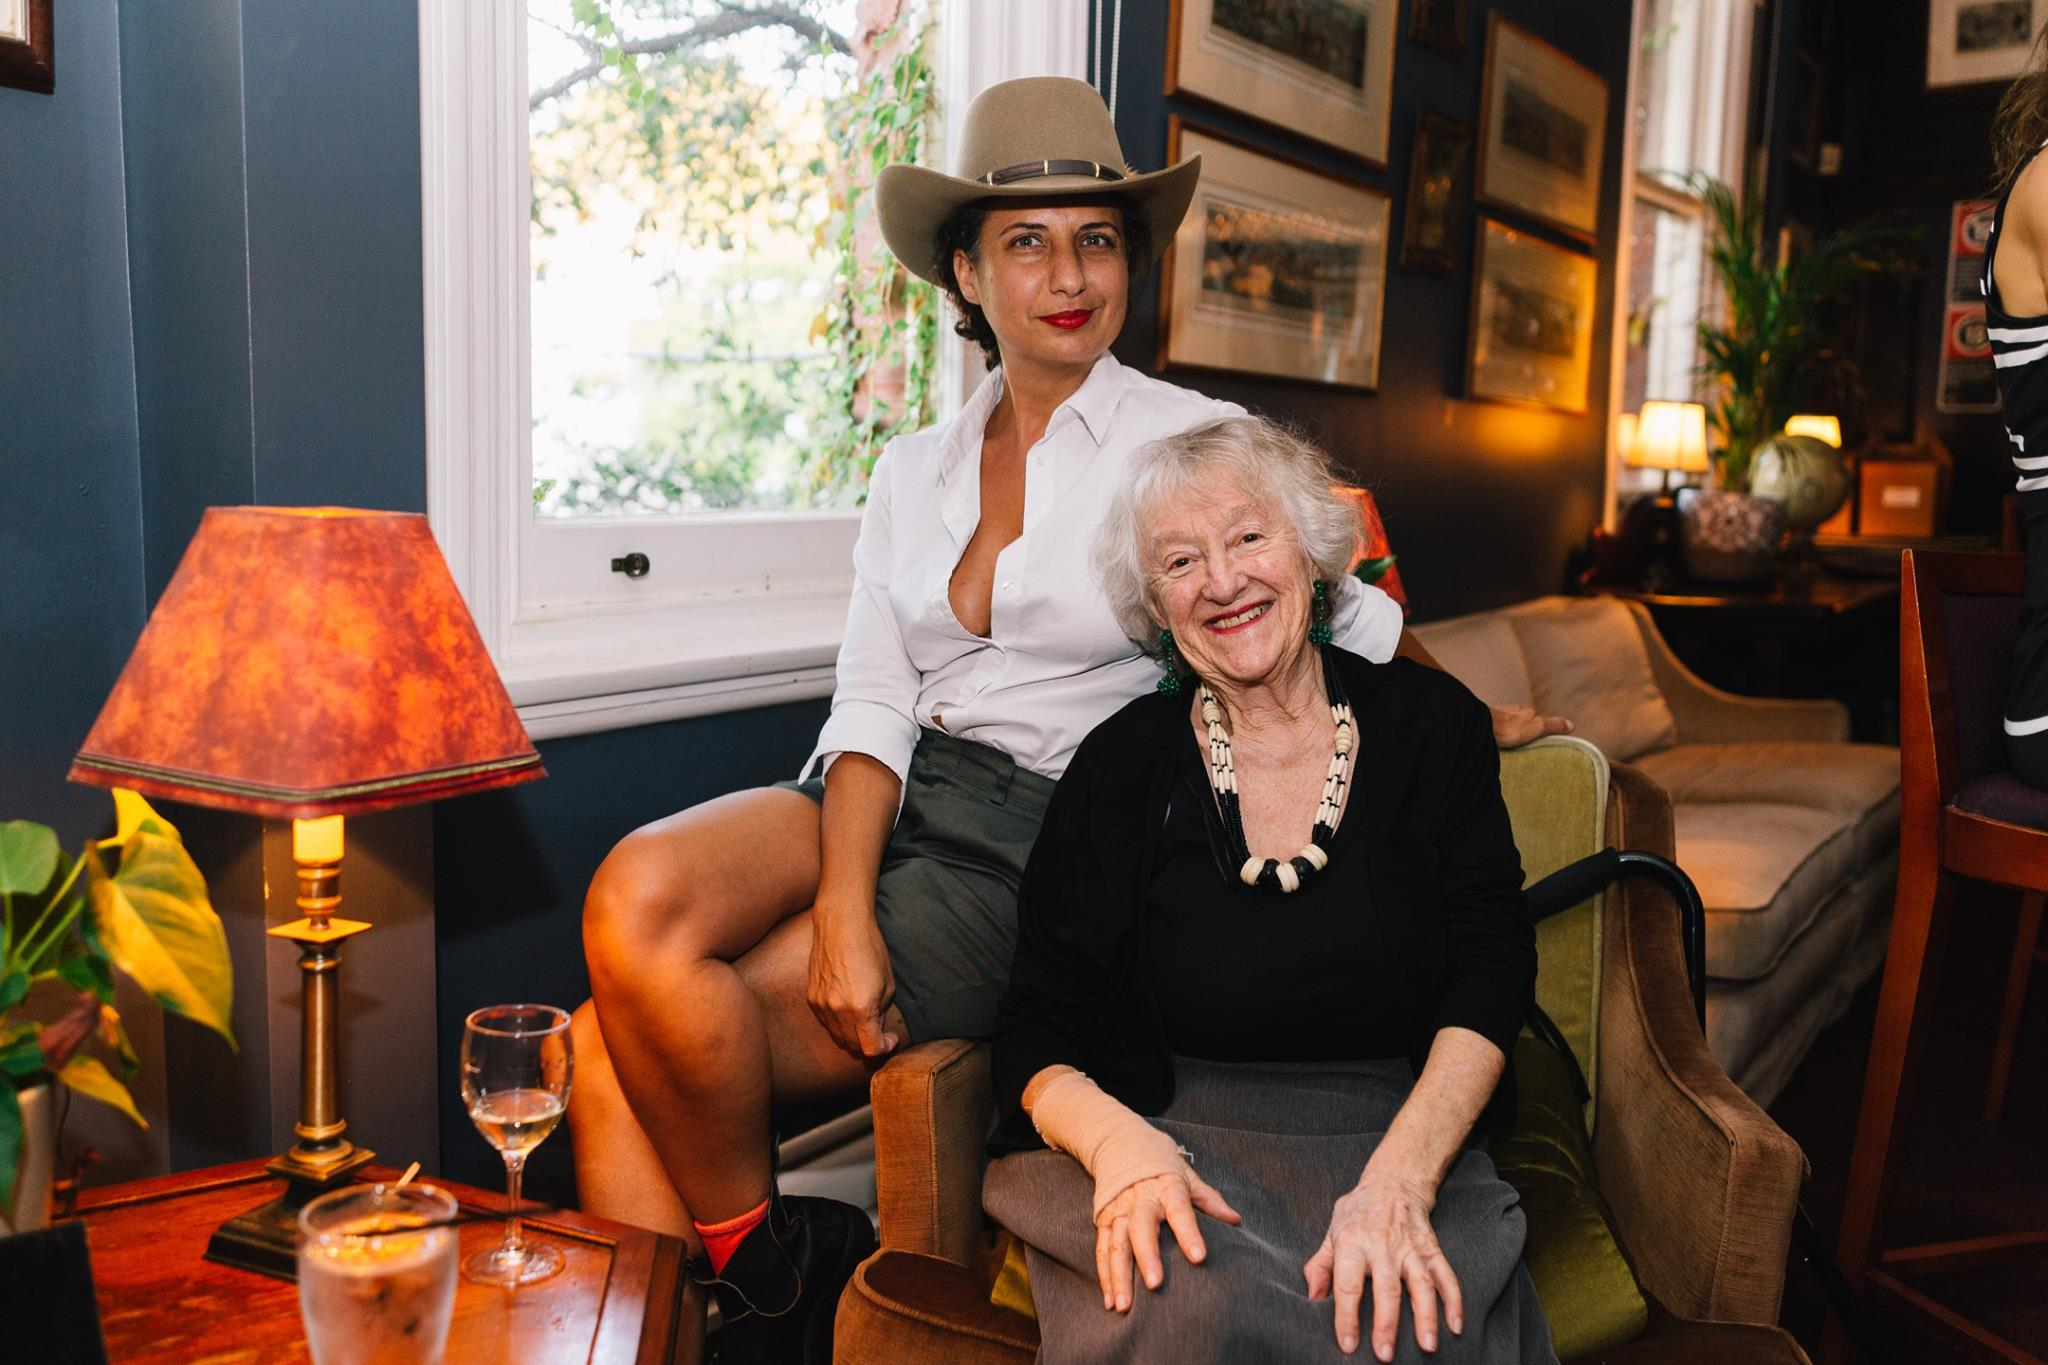 Amazing creative women, Cynthia Sciberras, editor of YOKE magazine, with Bev, 80 years young, at our Mama Creatives evening talk, 'Weaving a New Life: My Journey from Iran to Australia'.